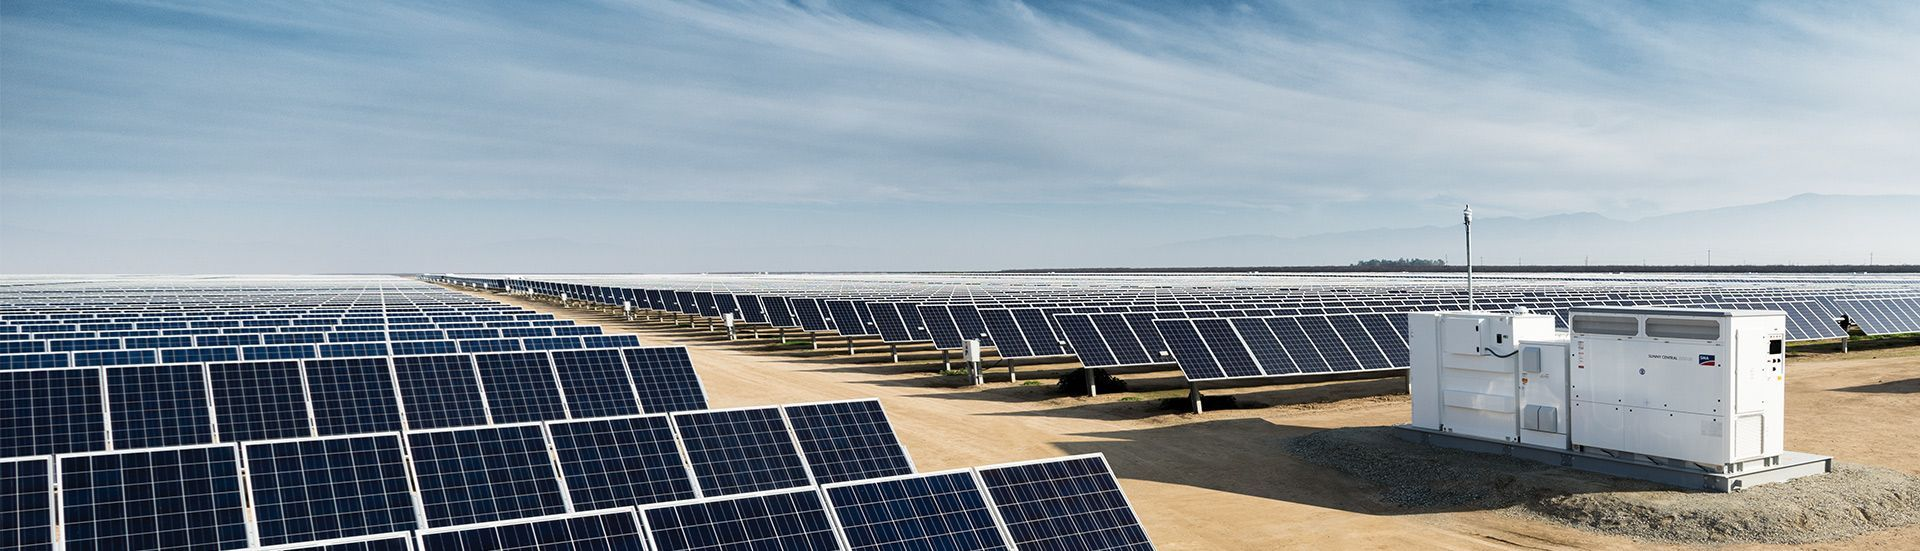 PV power plants - solar park